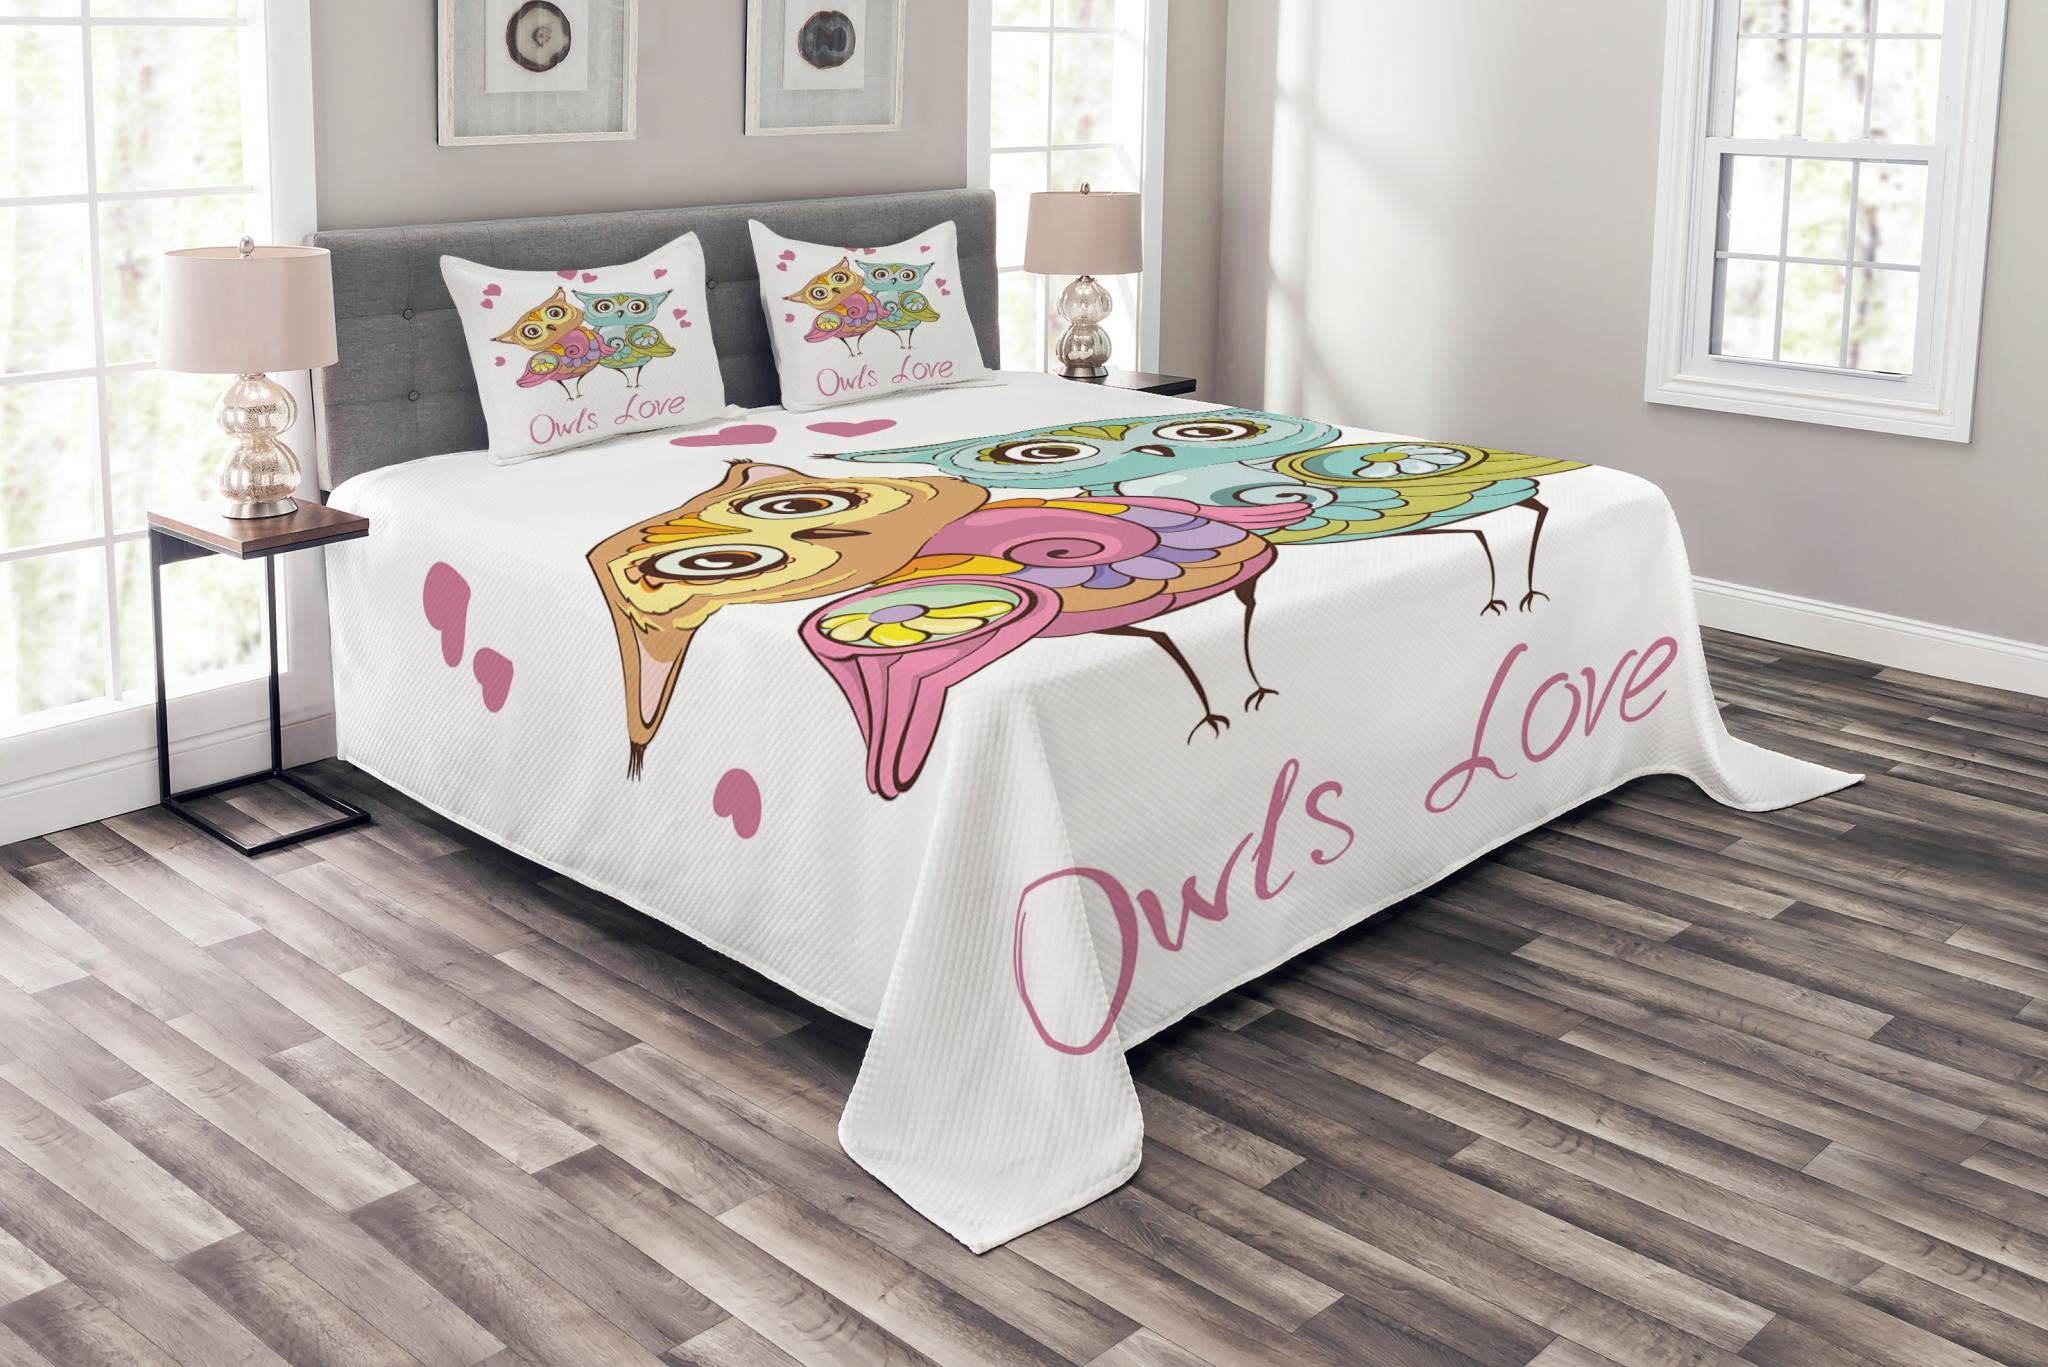 Lunarable Animals Bedspread Set King Size, Love Birds Owls Couples Family Anniversary Birthday Happiness Holiday Illustration, Decorative Quilted 3 Piece Coverlet Set with 2 Pillow Shams, Multicolor